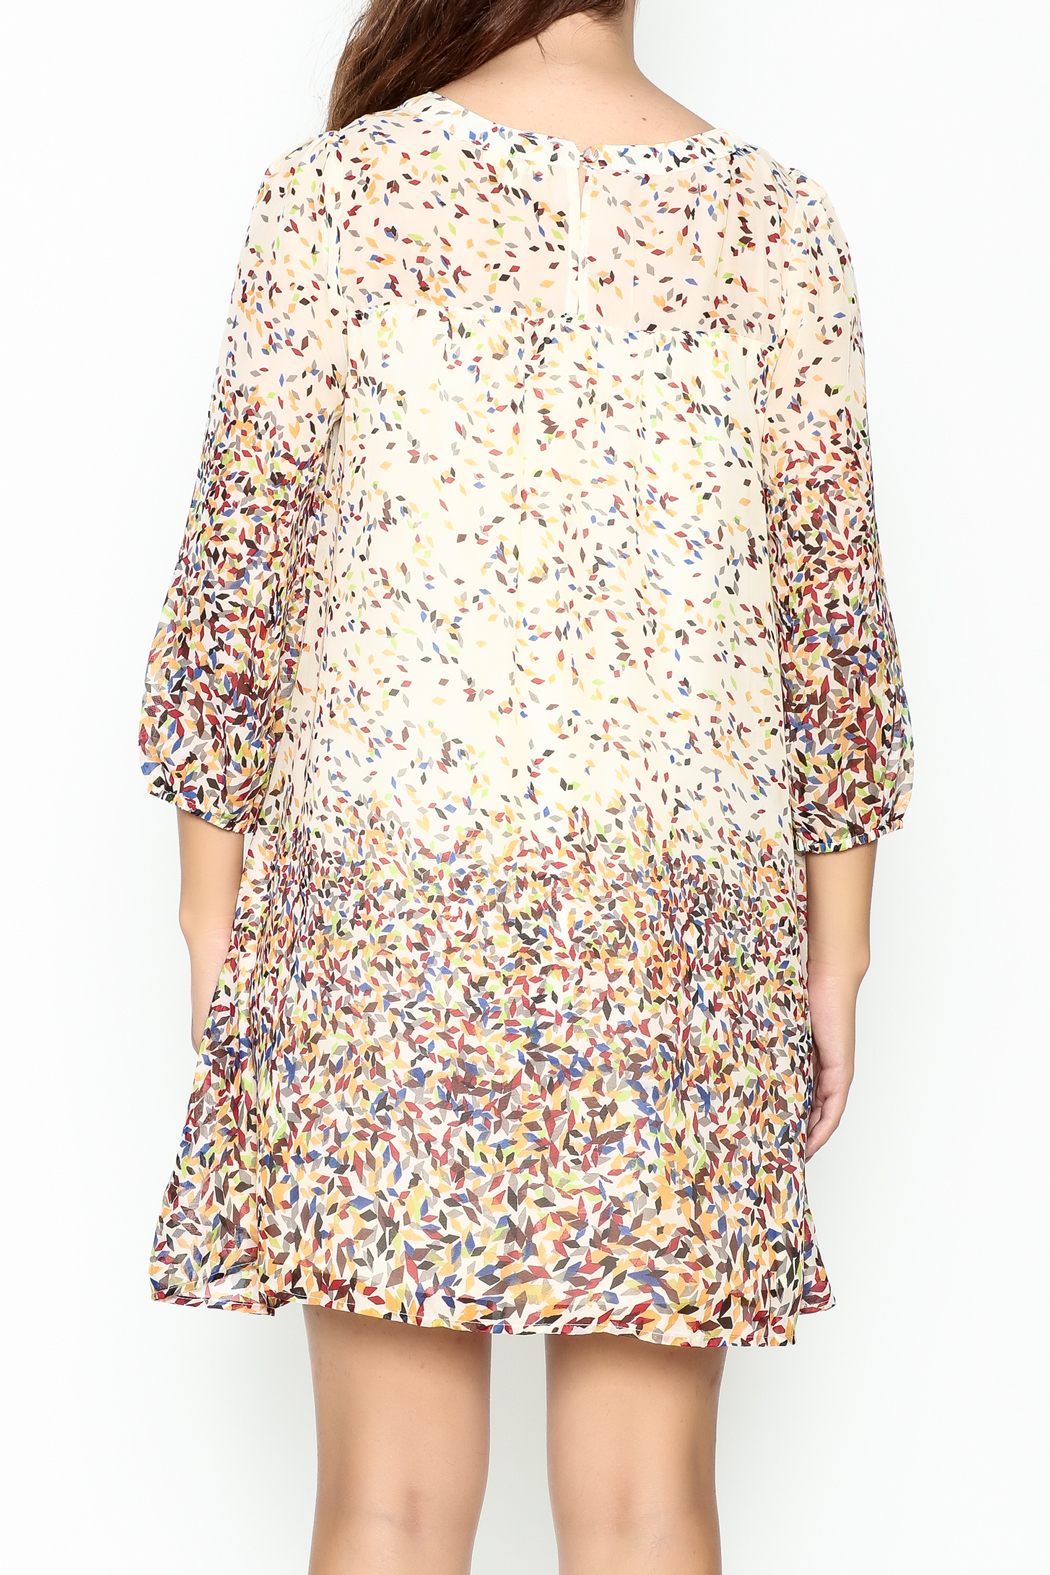 KORI AMERICA Confetti Dress - Back Cropped Image